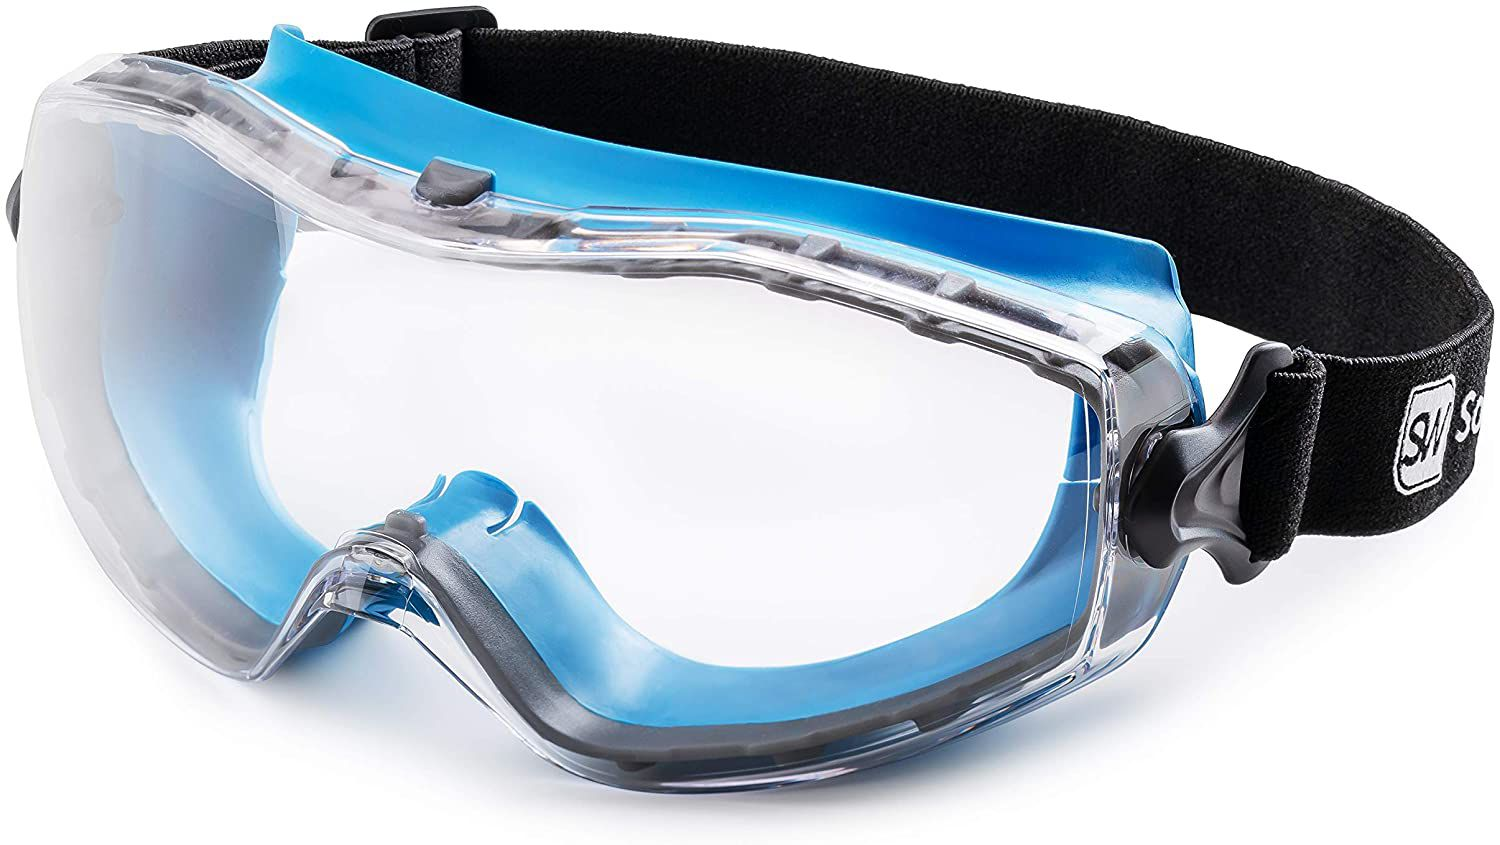 Safety Goggles with Universal Fit